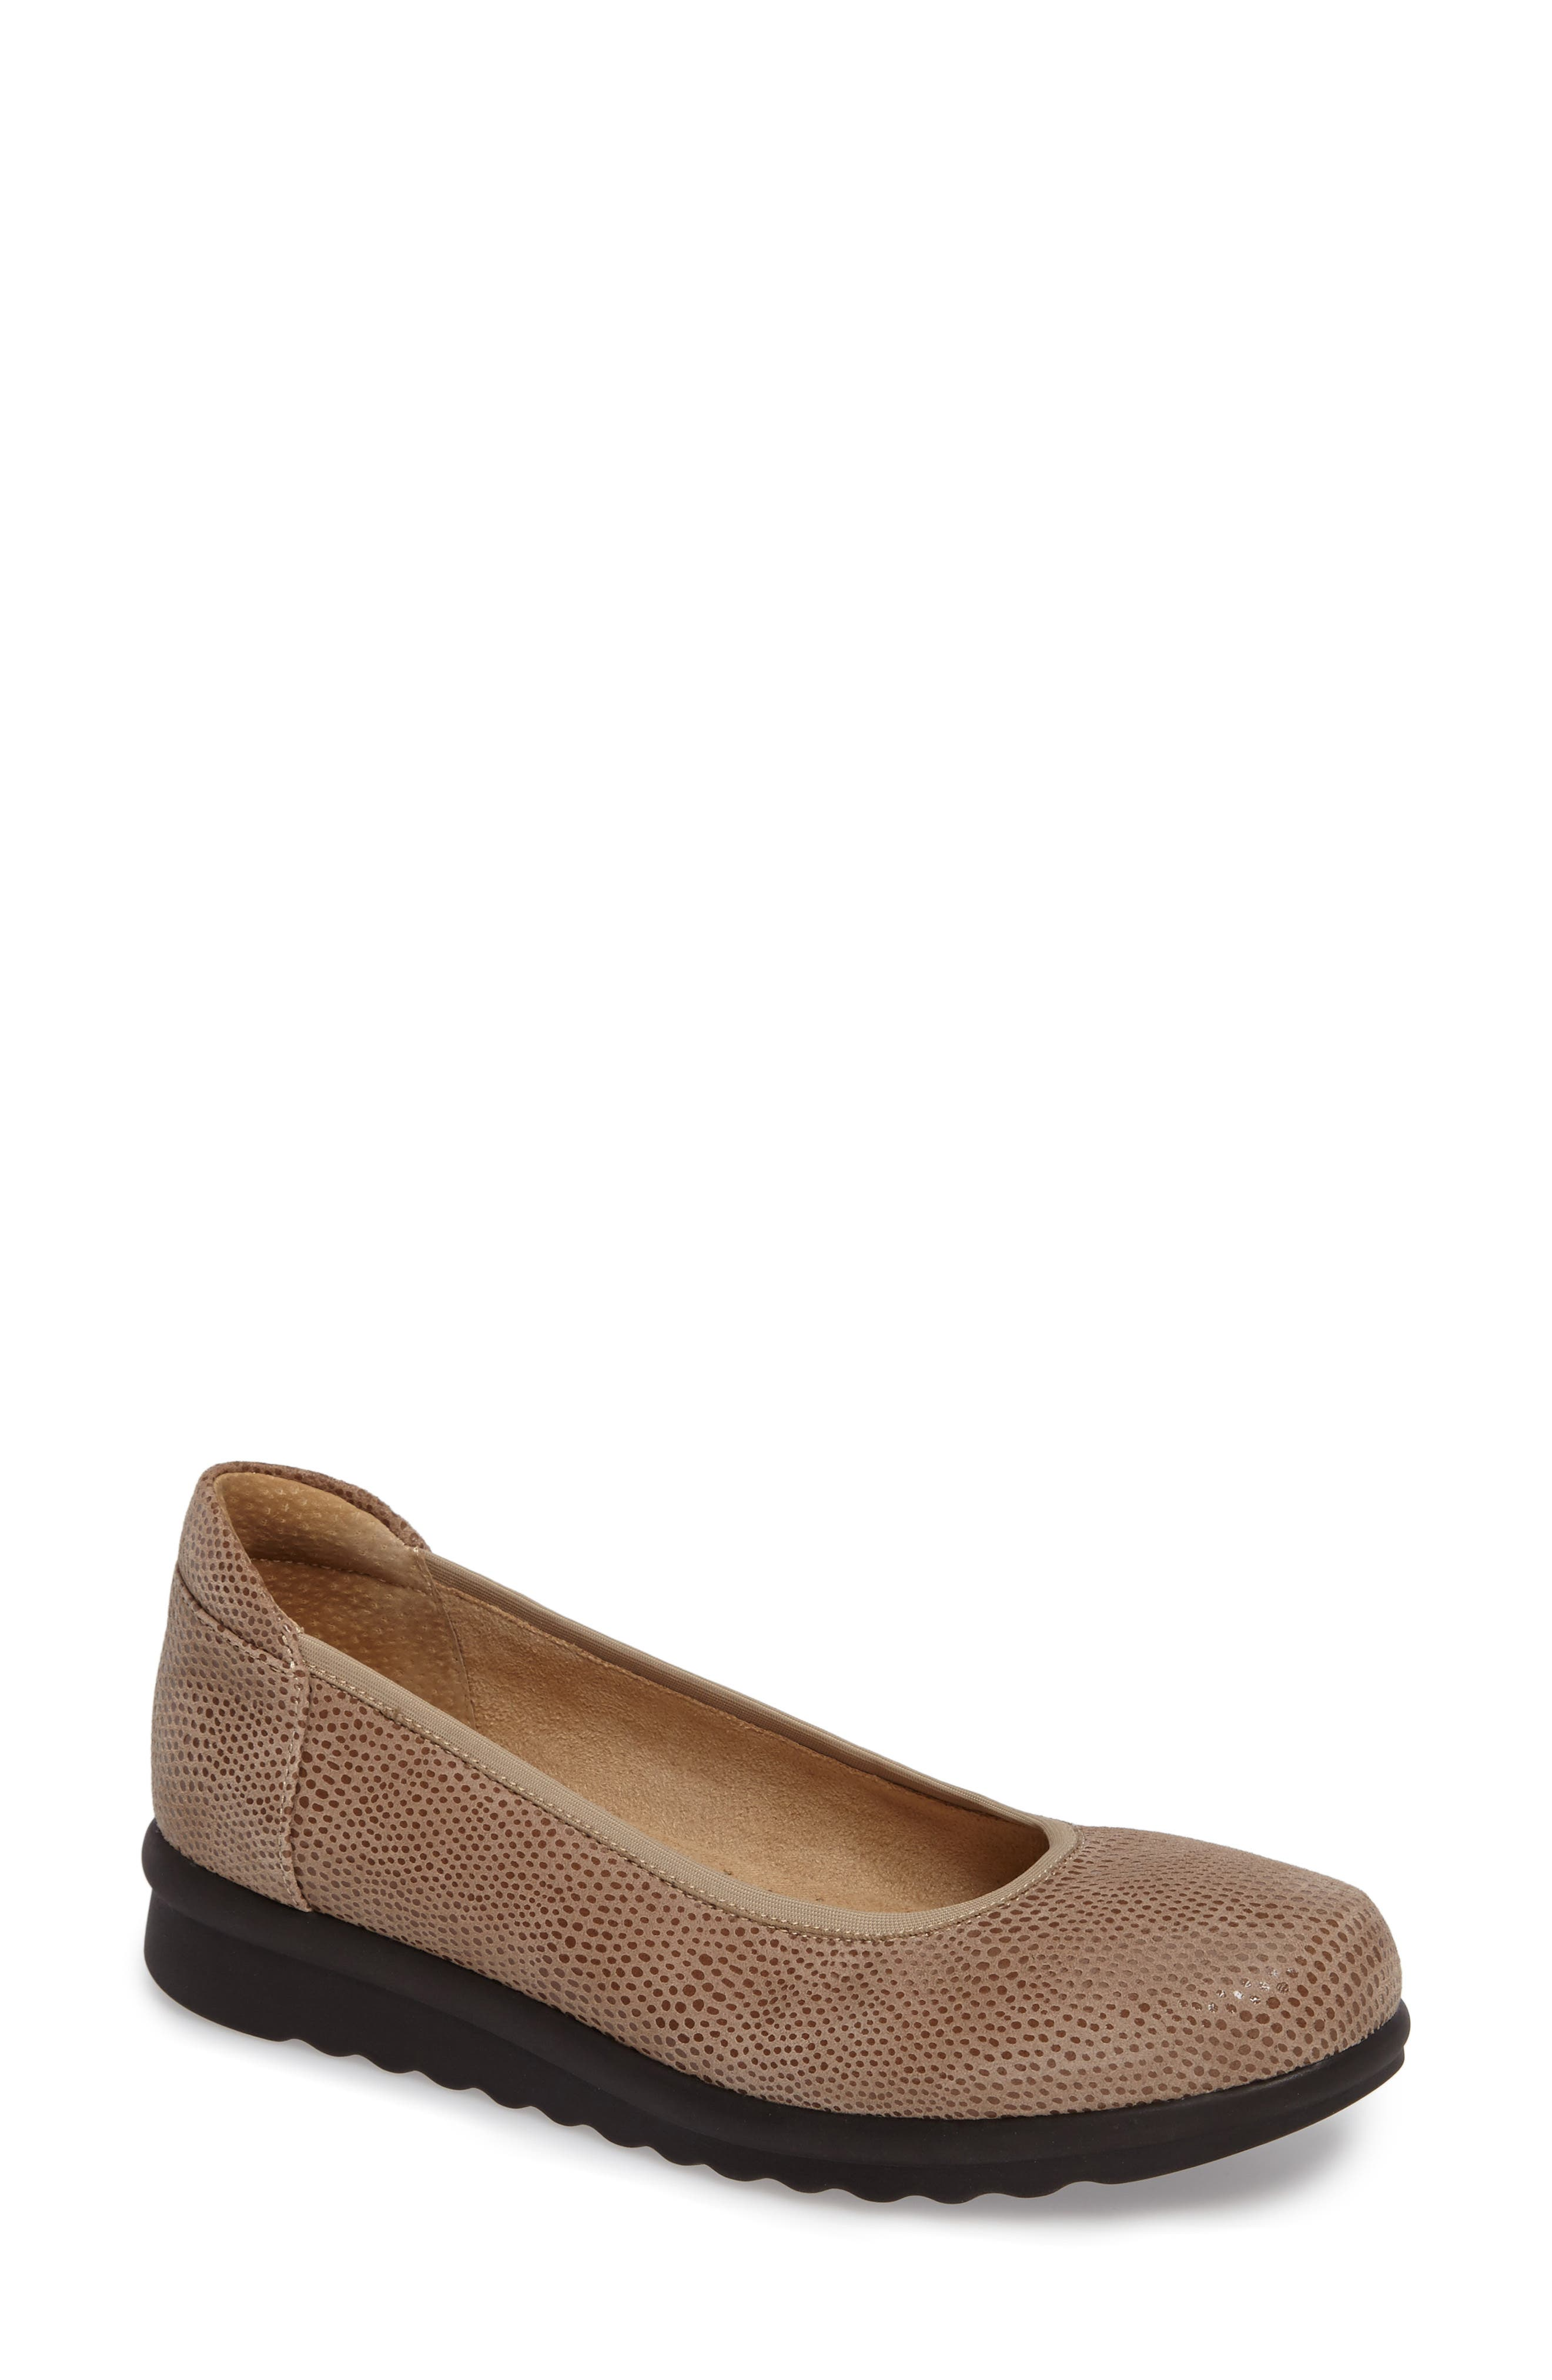 Donia Flat,                         Main,                         color, Taupe Print Fabric